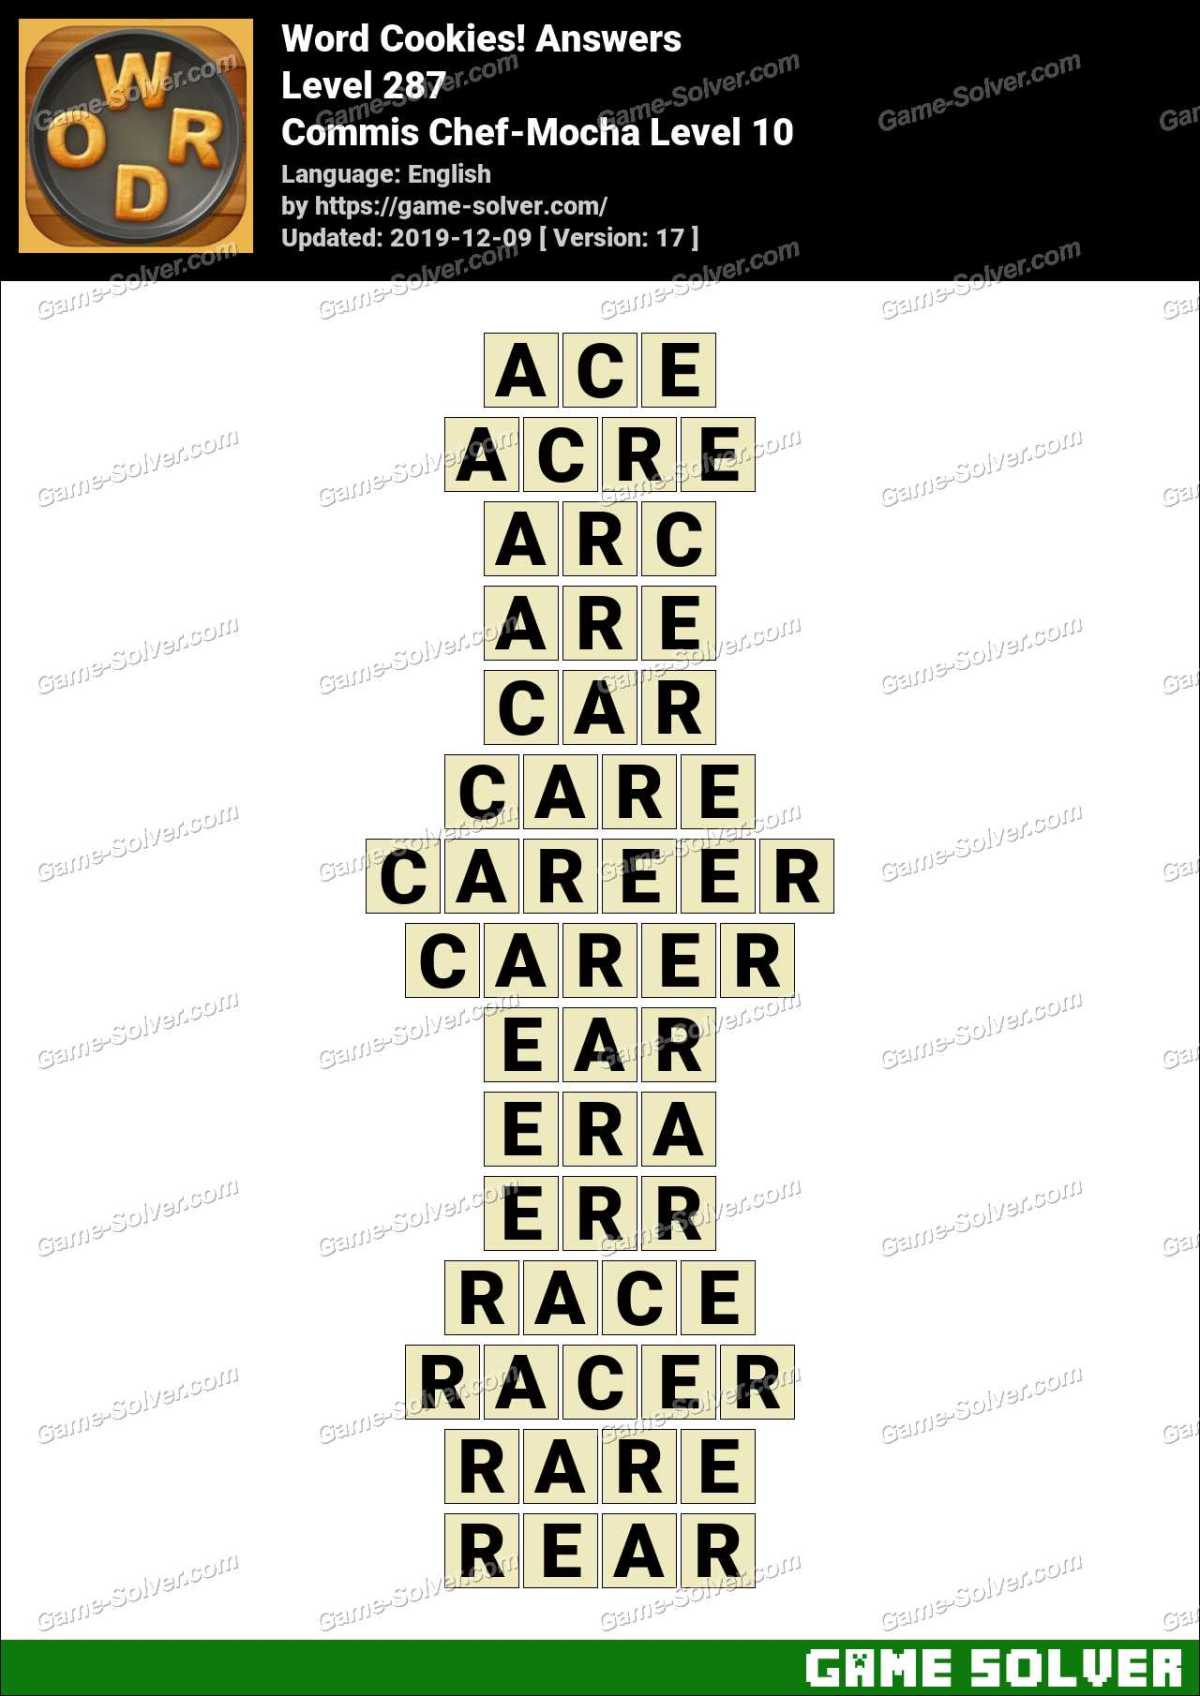 Word Cookies Commis Chef-Mocha Level 10 Answers